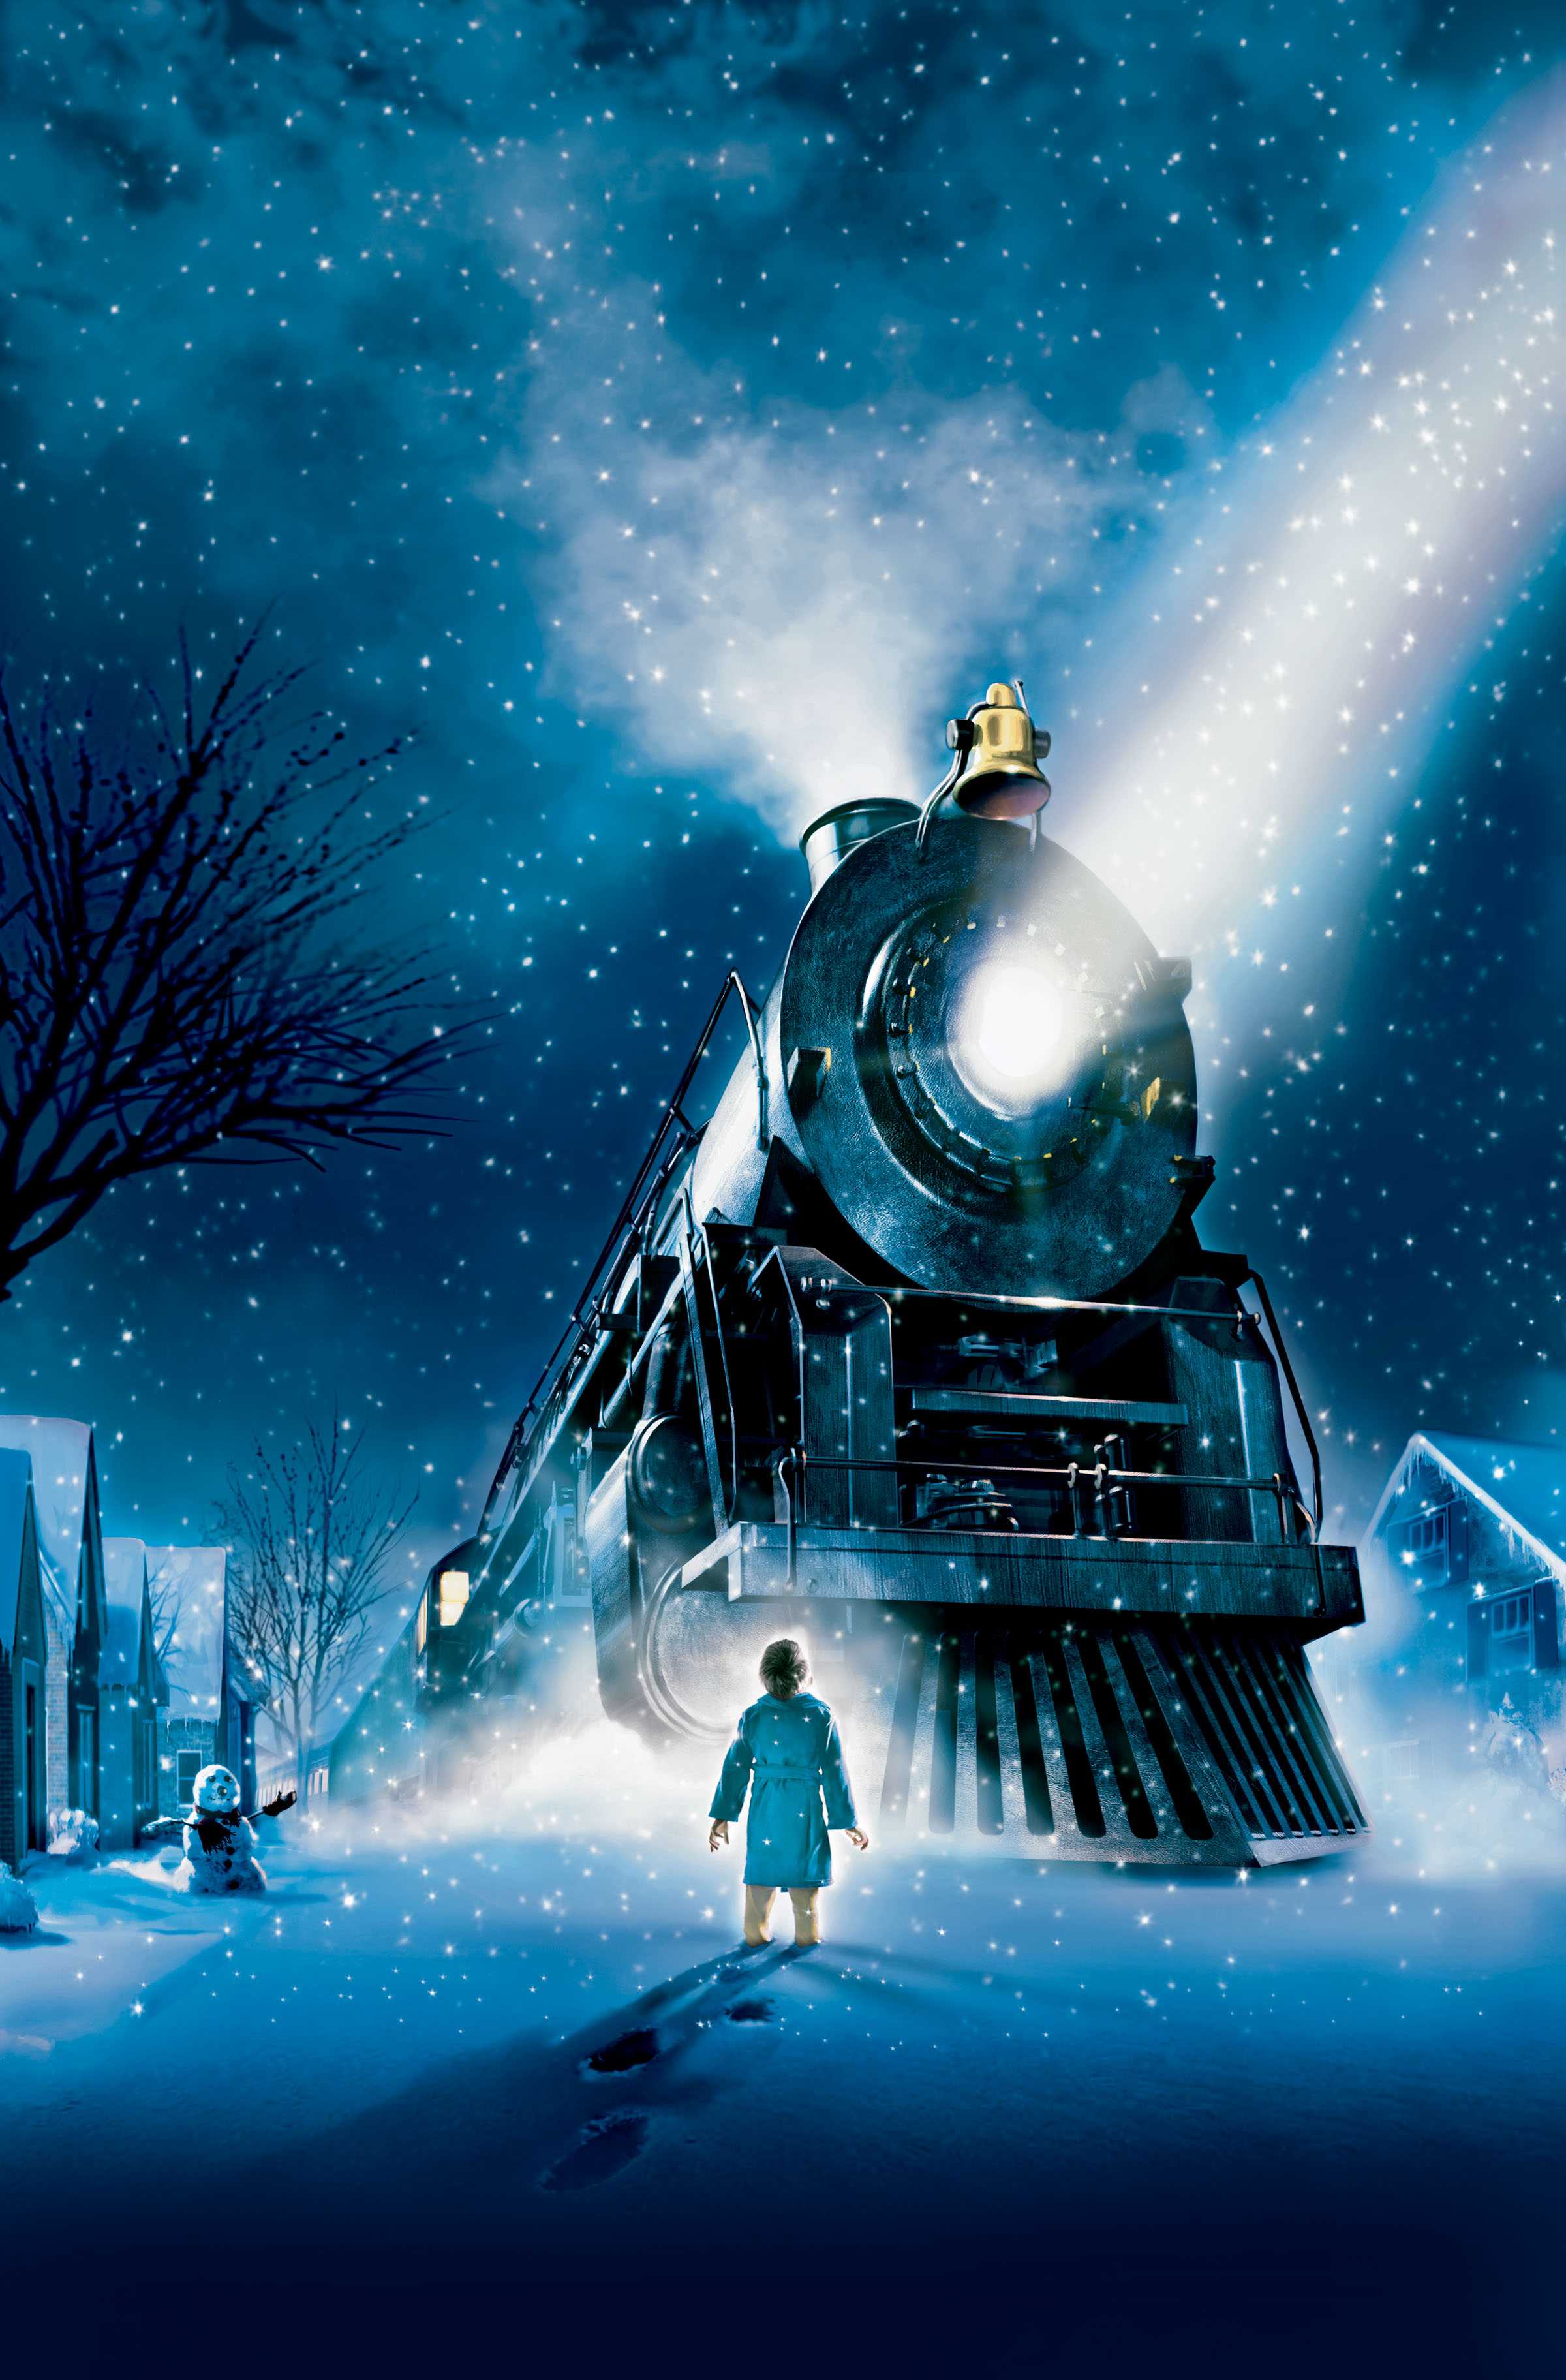 The Train from The Polar Express in IMAX 3D